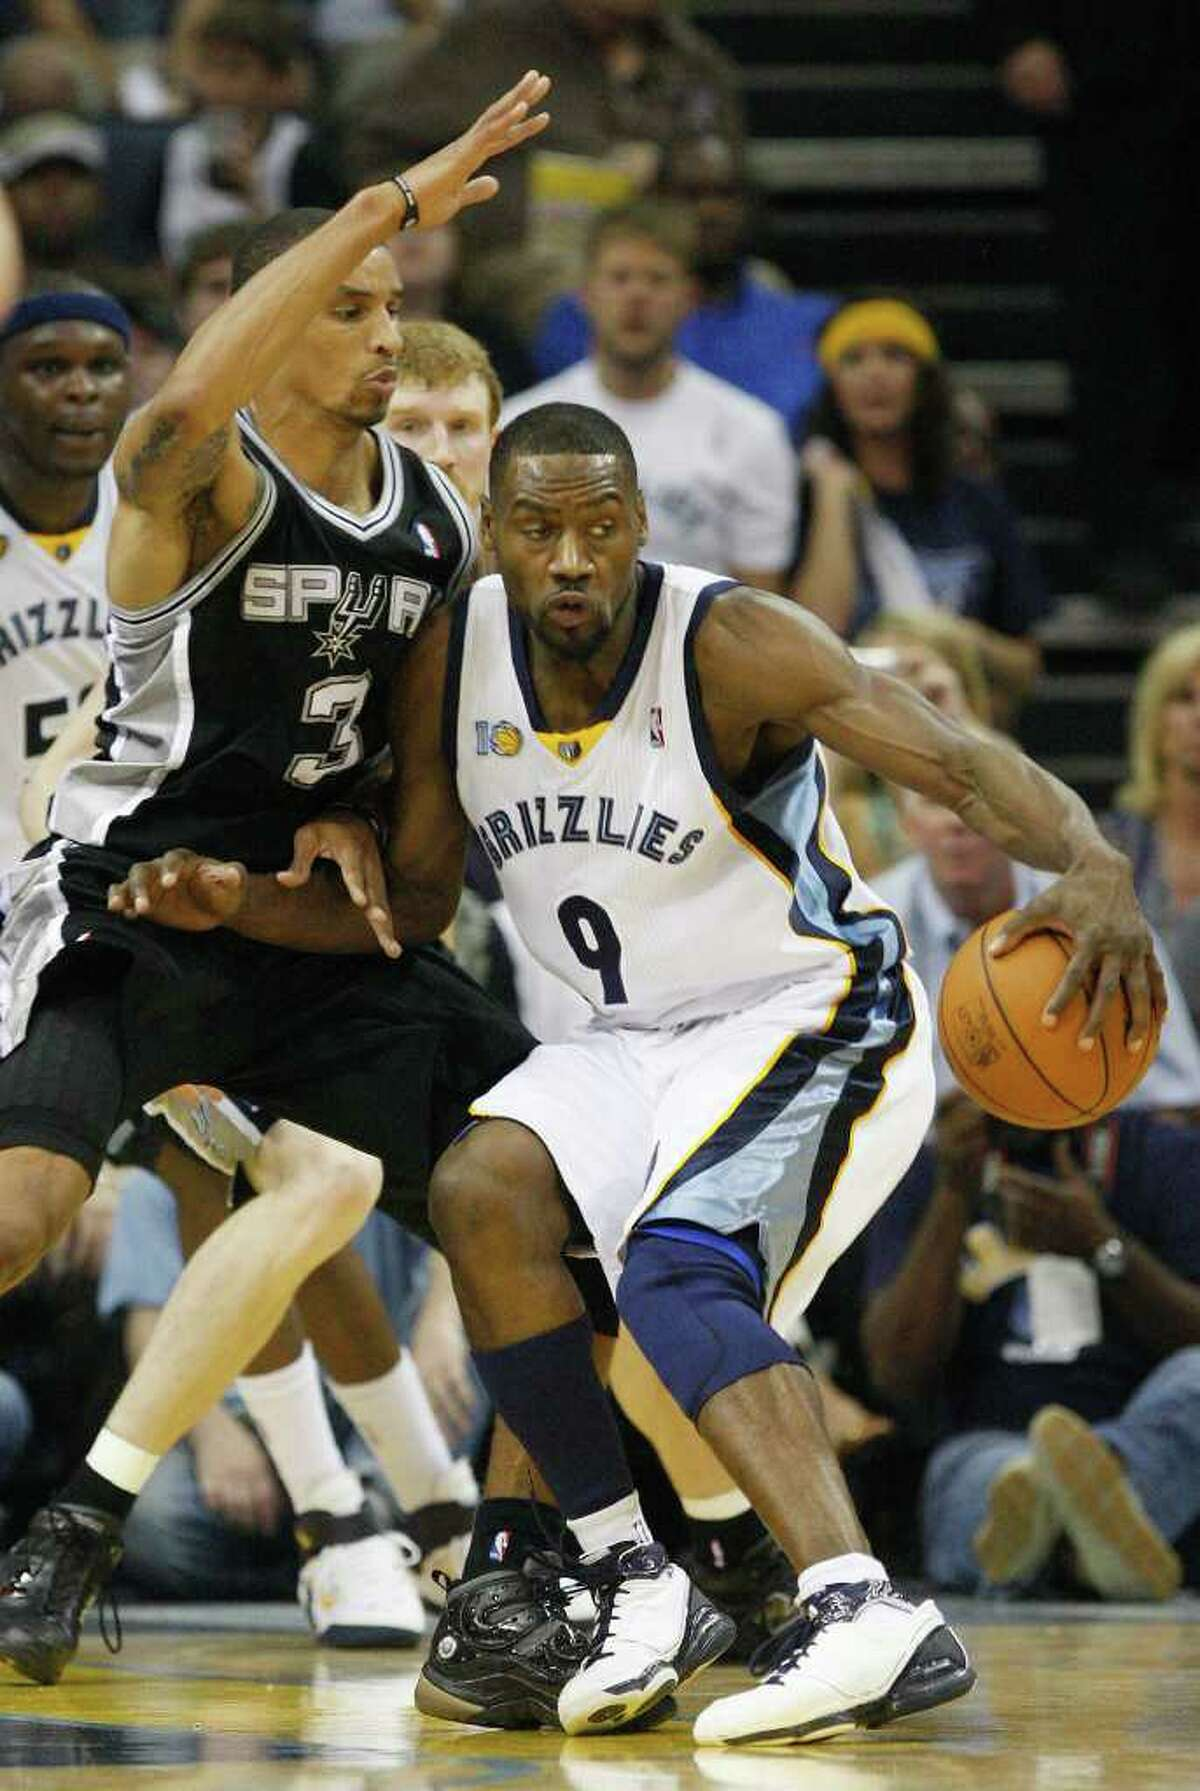 Spurs George Hill tries to defend against Memphis Grizzlies Tony Allen during the first half of game four of the Western Conference First Round at FedExForum in Memphis, TN, Monday, April 25, 2011. JERRY LARA/glara@express-news.net